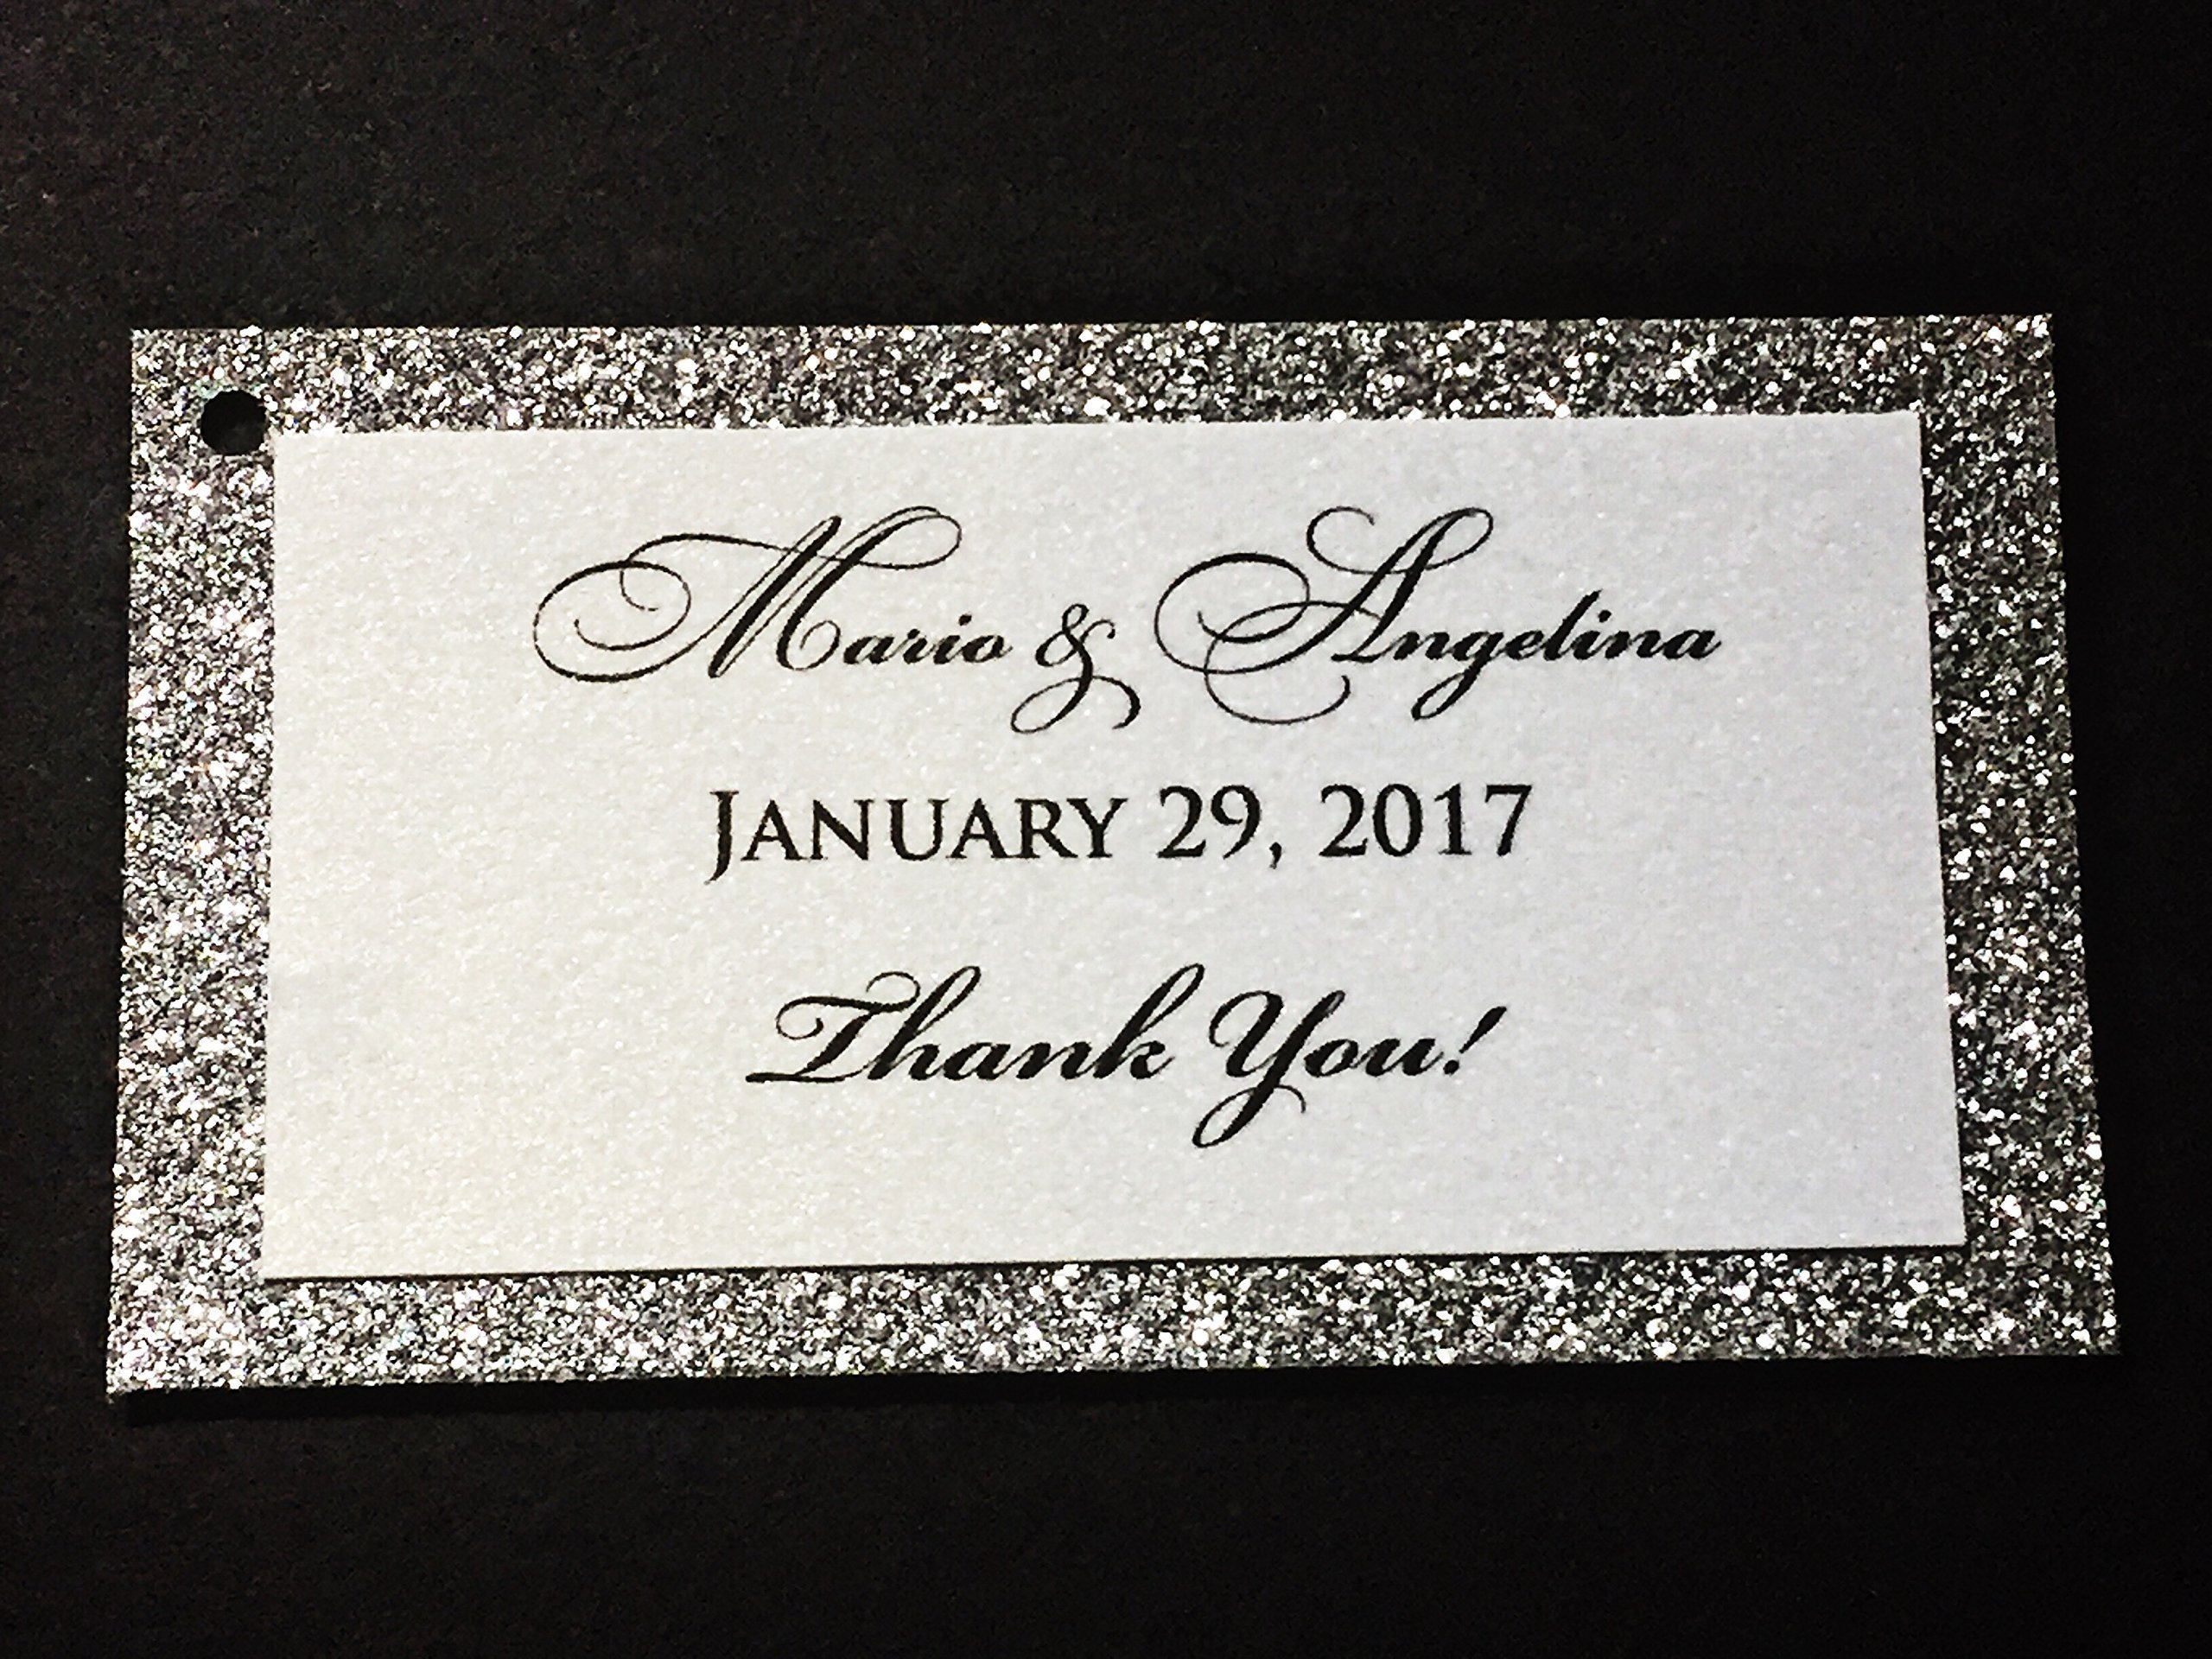 Wedding Thank You Favor Tags Silver Glitter Personalized Set of 25 - Bridal Baby Shower Birthday